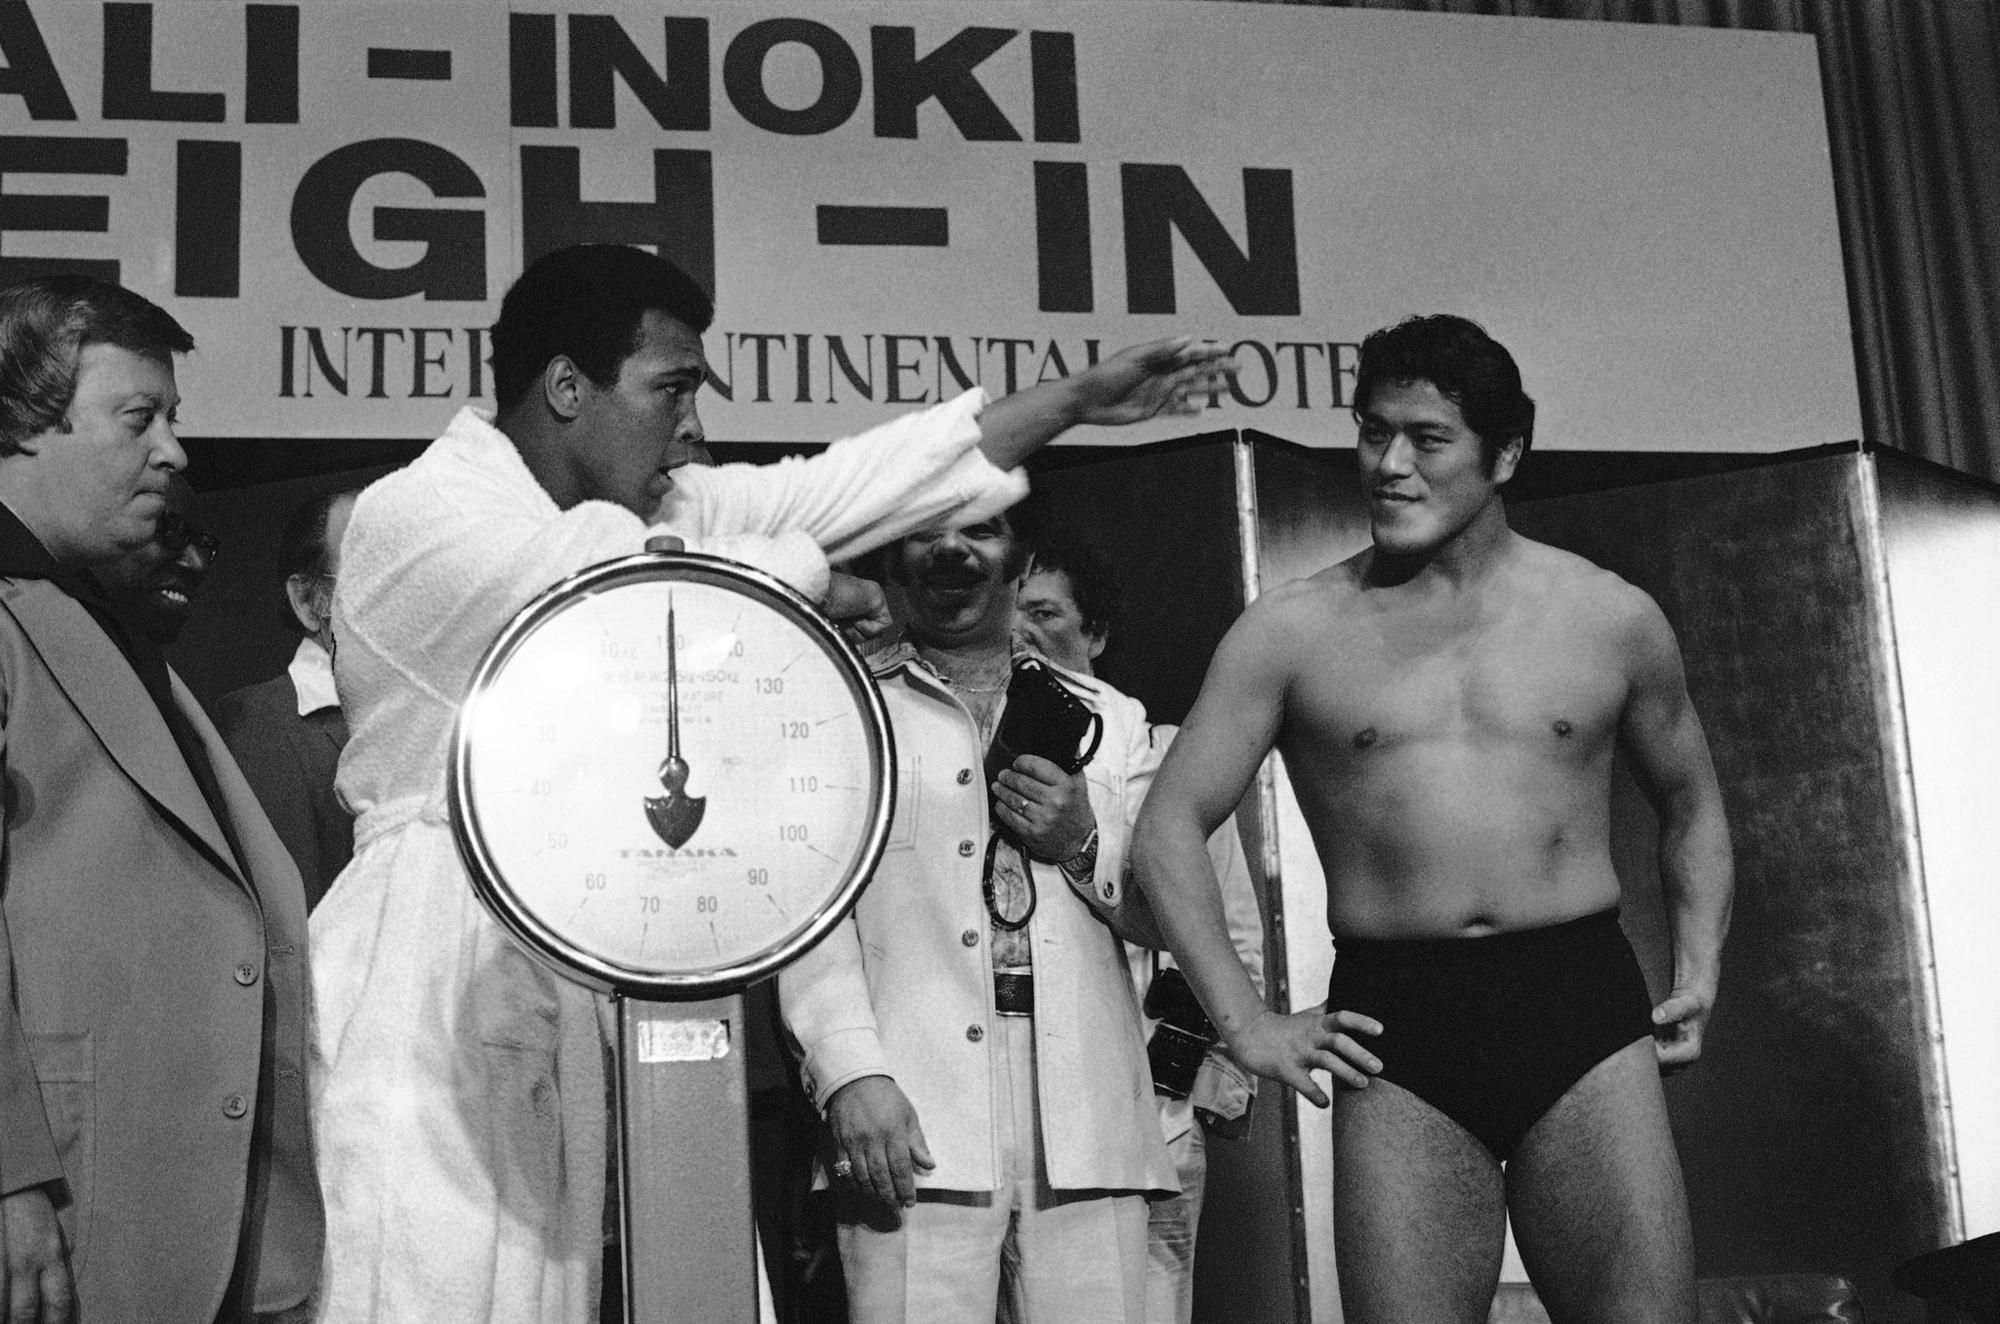 Muhammad Ali, standing on scale, gestures at his opponent, National Wrestling Federation world heavyweight champion Antonio Inoki.